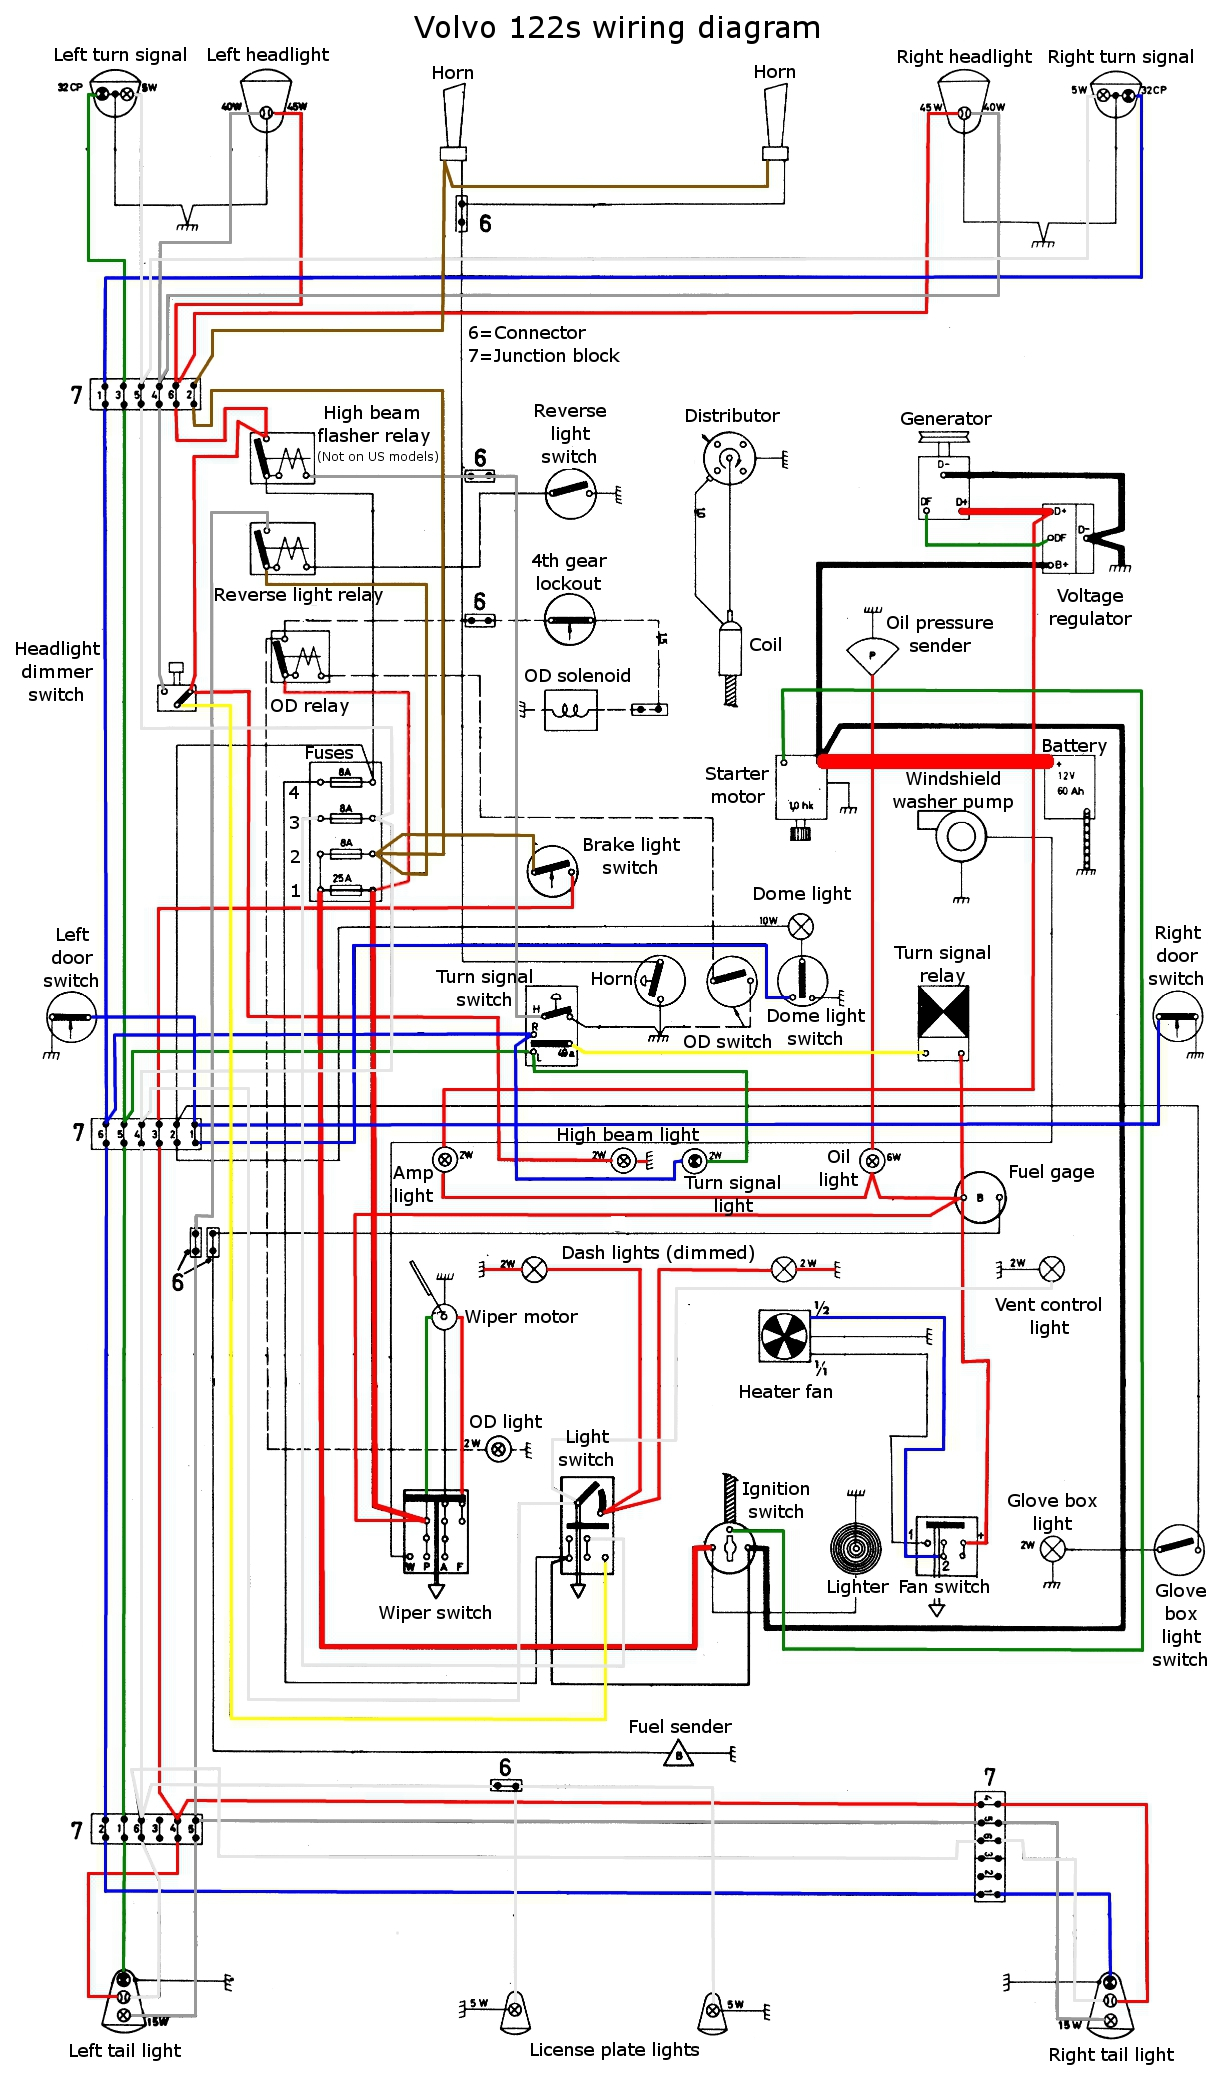 122 wiring diagram color wiring gremlins volvo wiring harness connectors at fashall.co